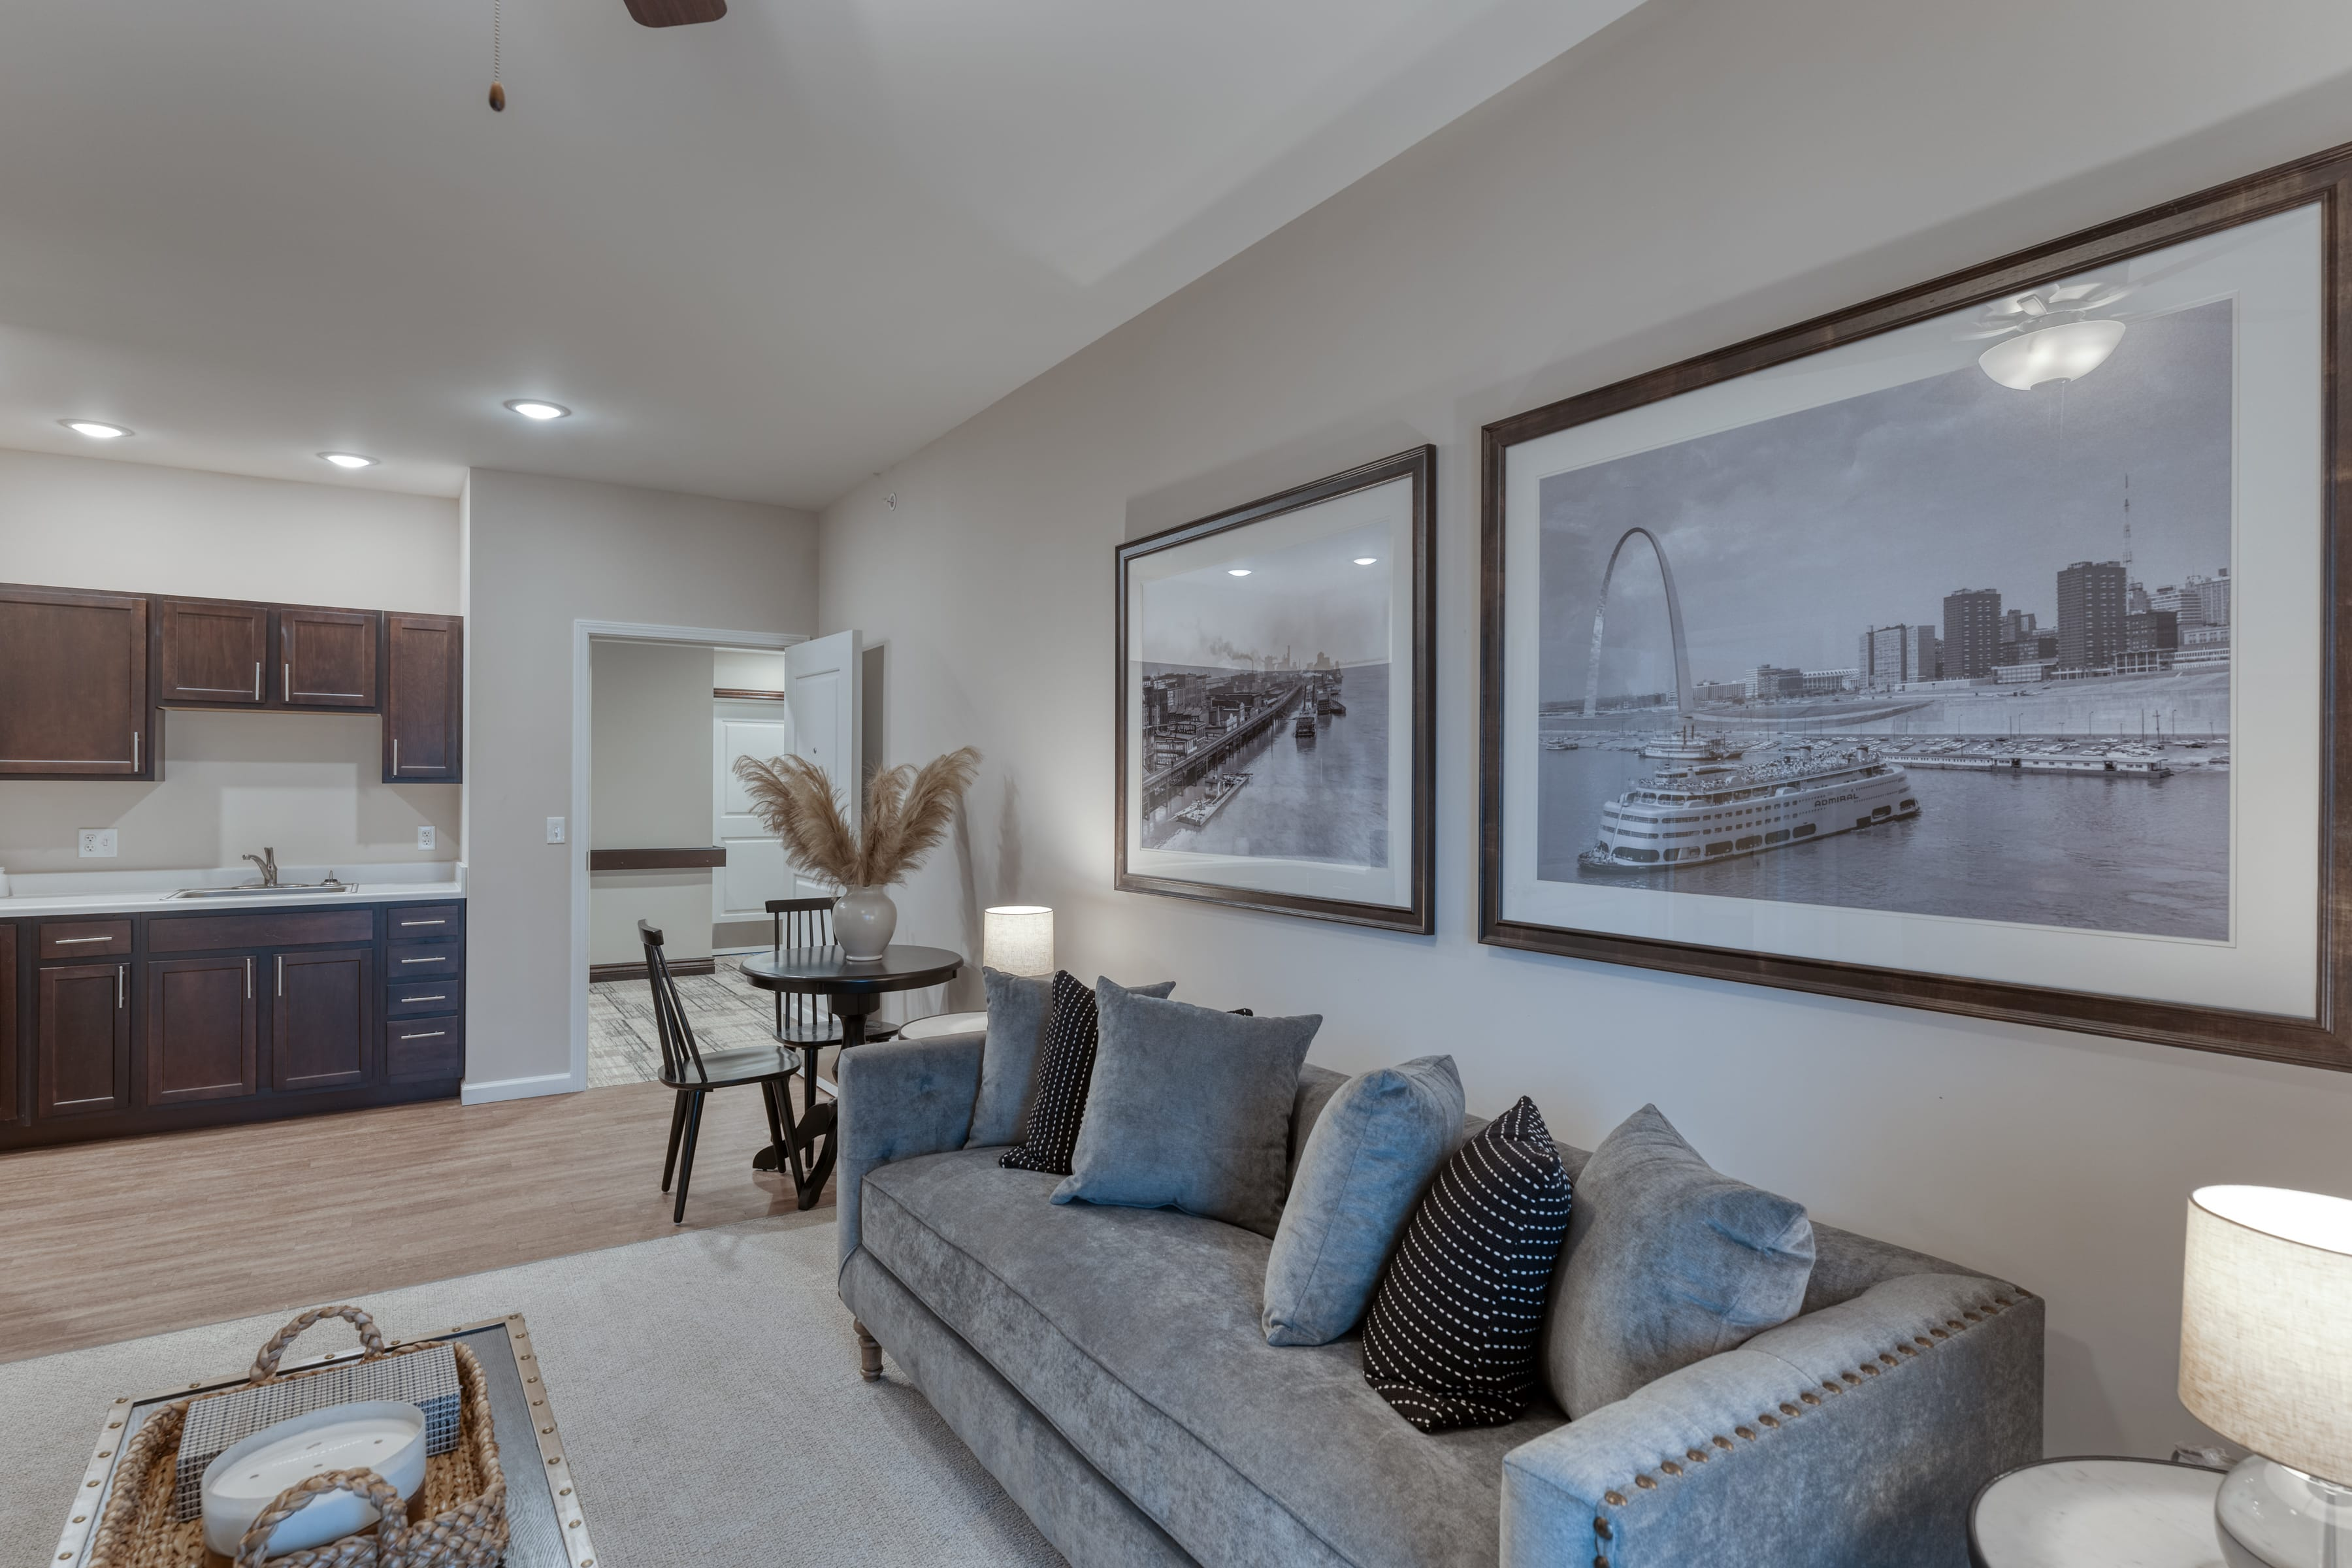 Comfortable sofas and flexible dining areas provide many options to residents